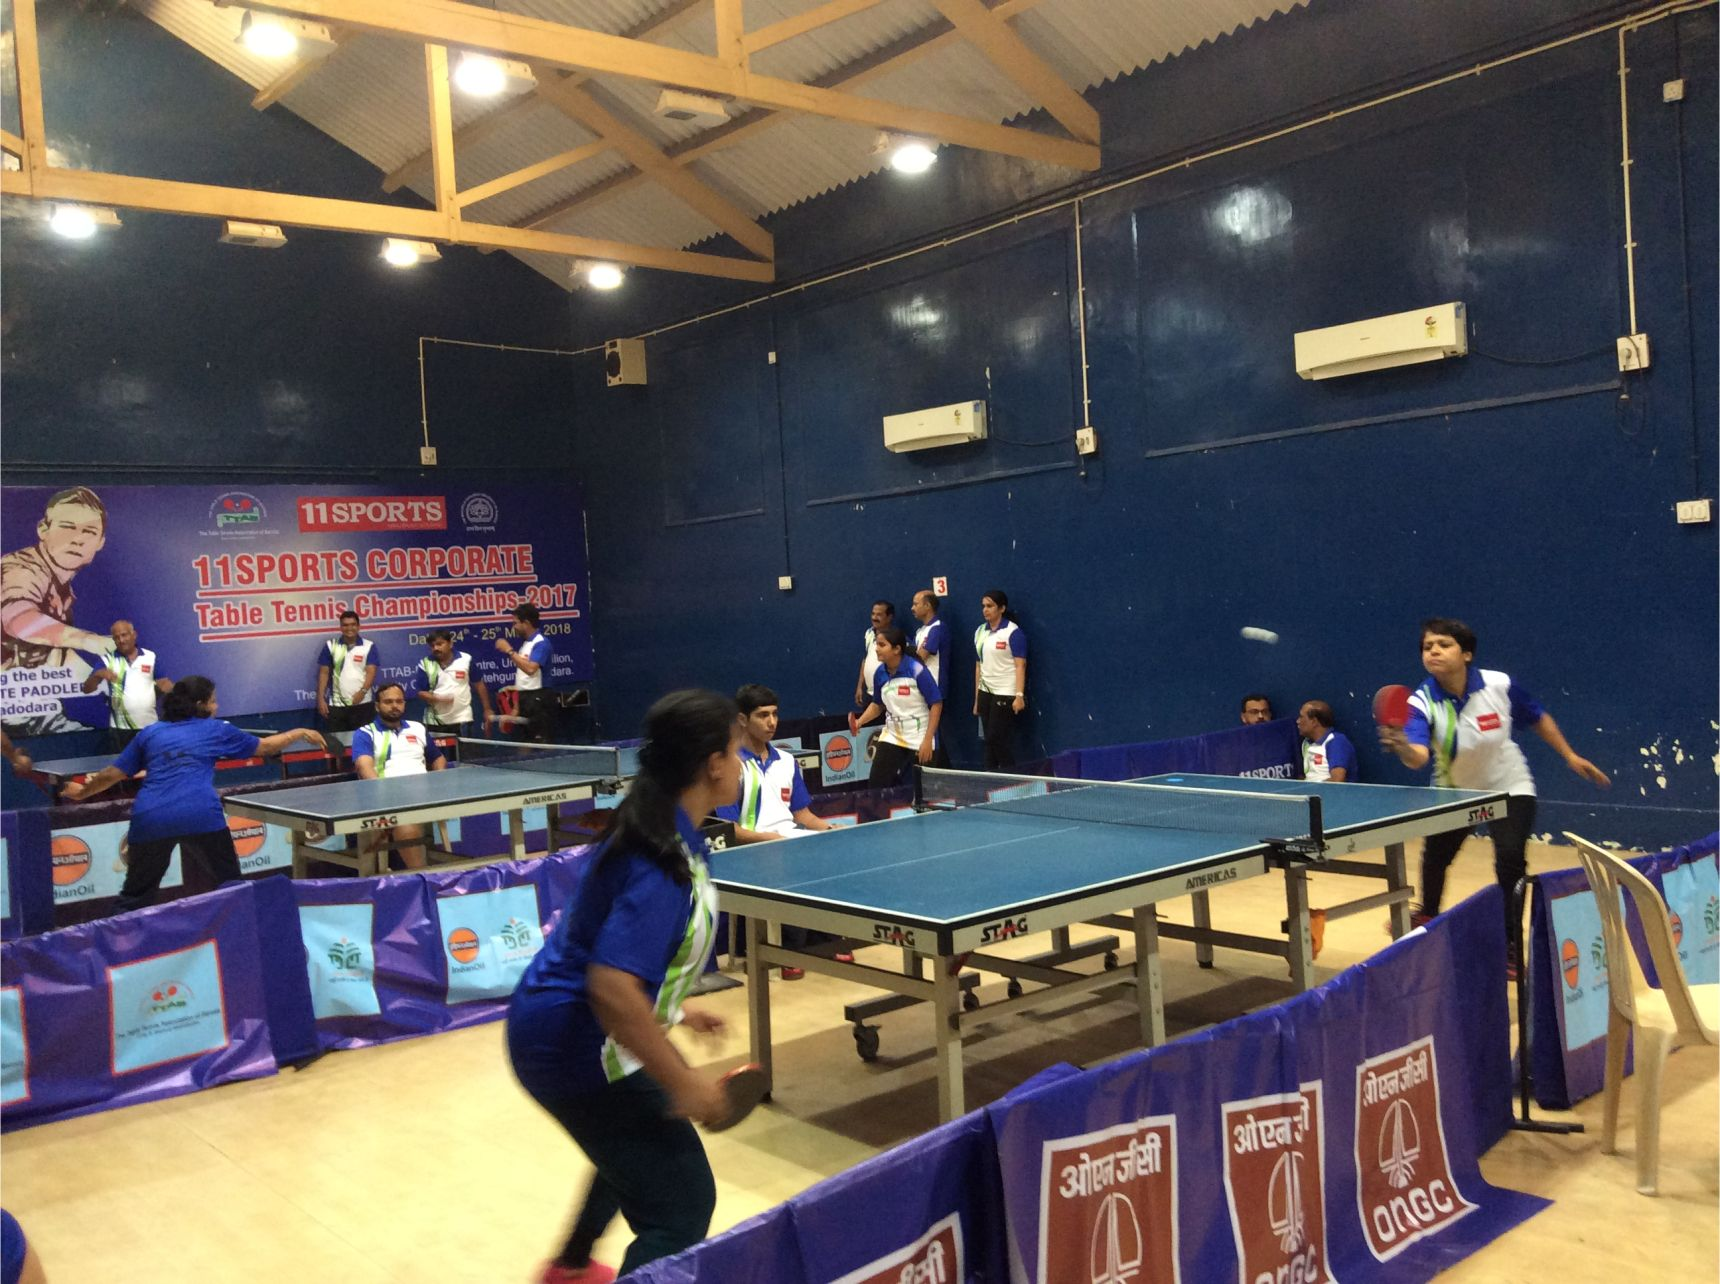 First Day of 11SPORTS Corporate Table Tennis Championships in Vadodara